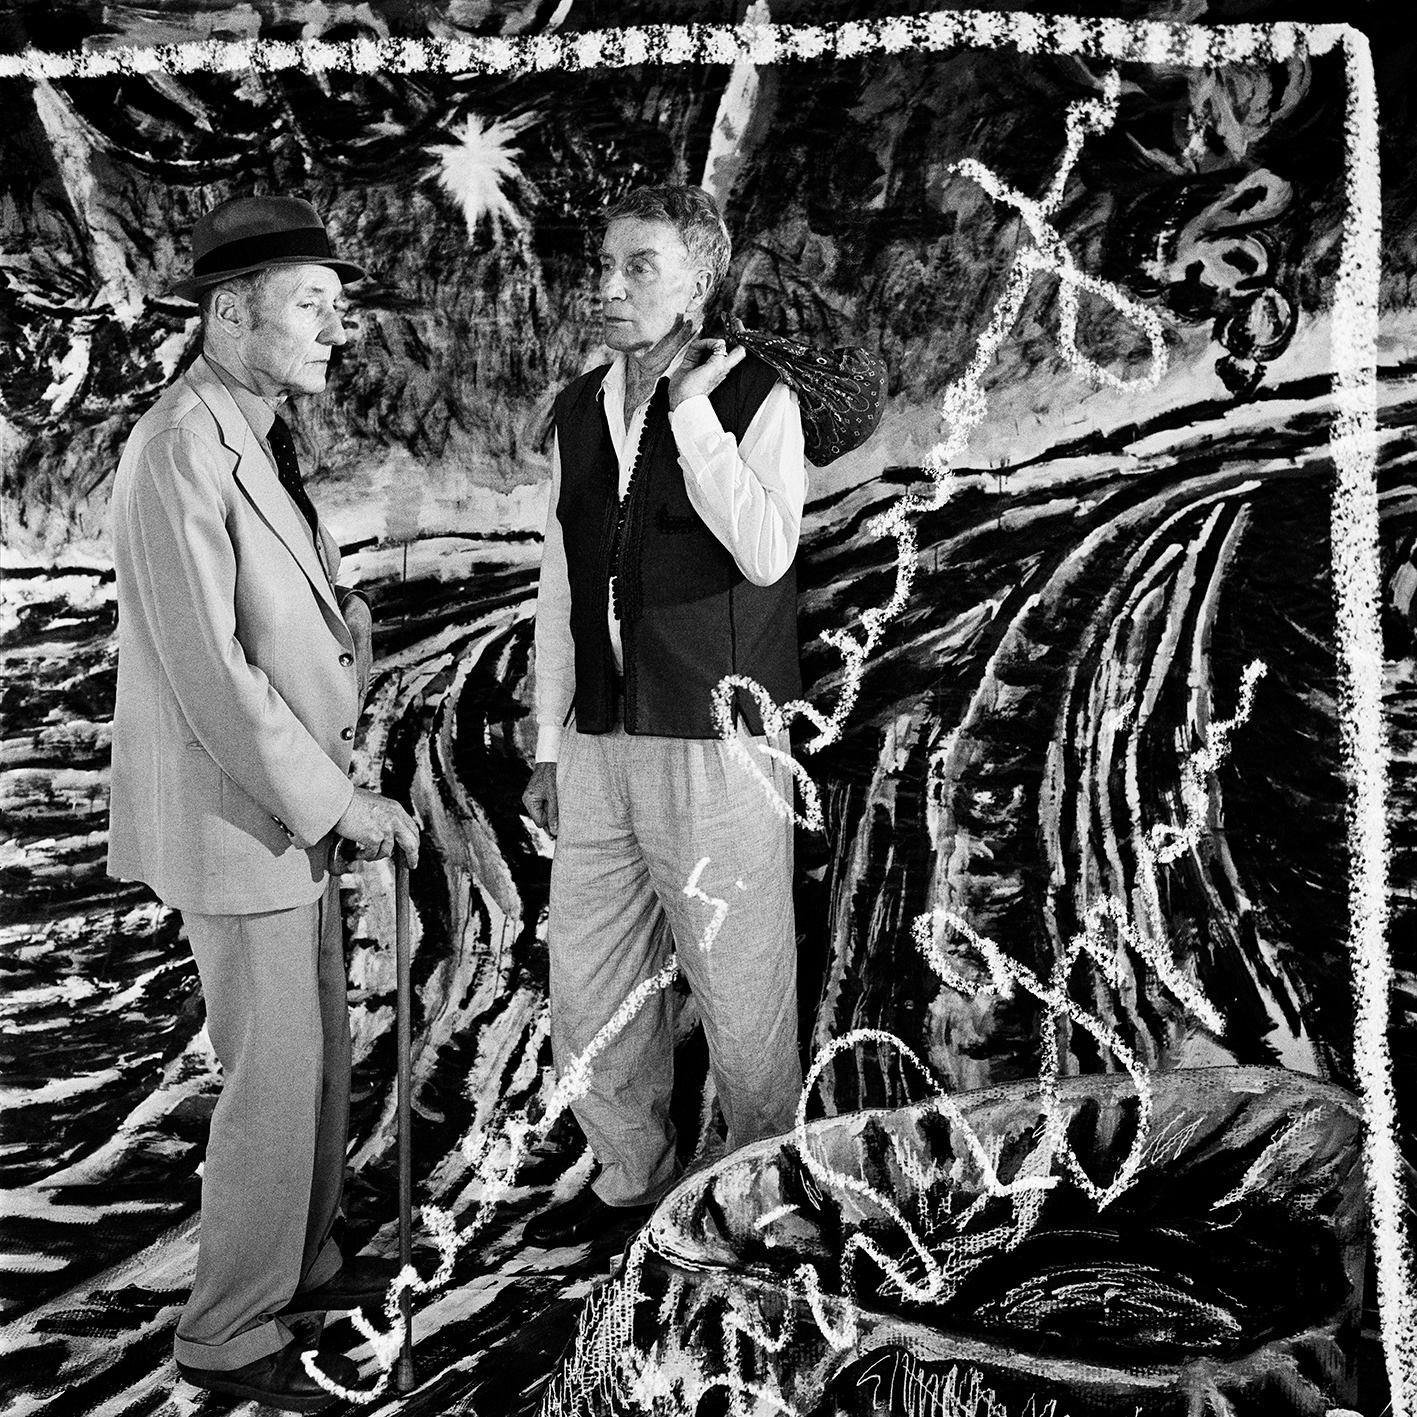 William S. Burroughs and Brion Gysin circa 1978 #writer #author #artist https://t.co/g2DxvXhLCJ